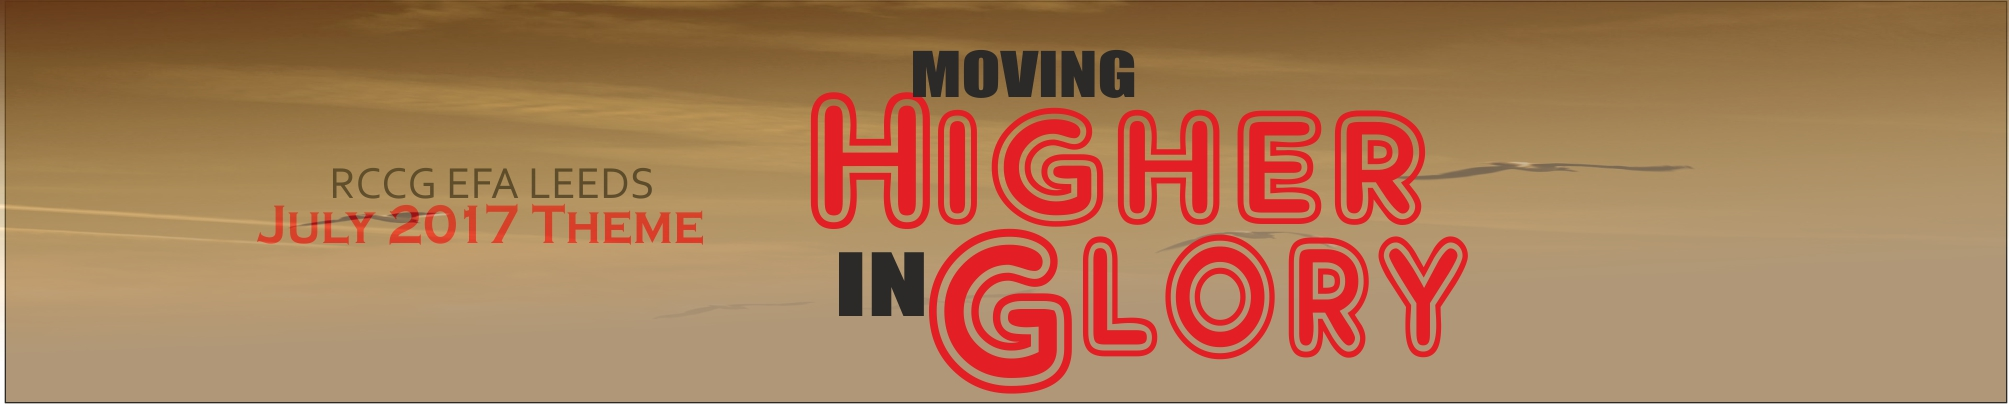 July 2017 Theme – Moving Higher In Glory